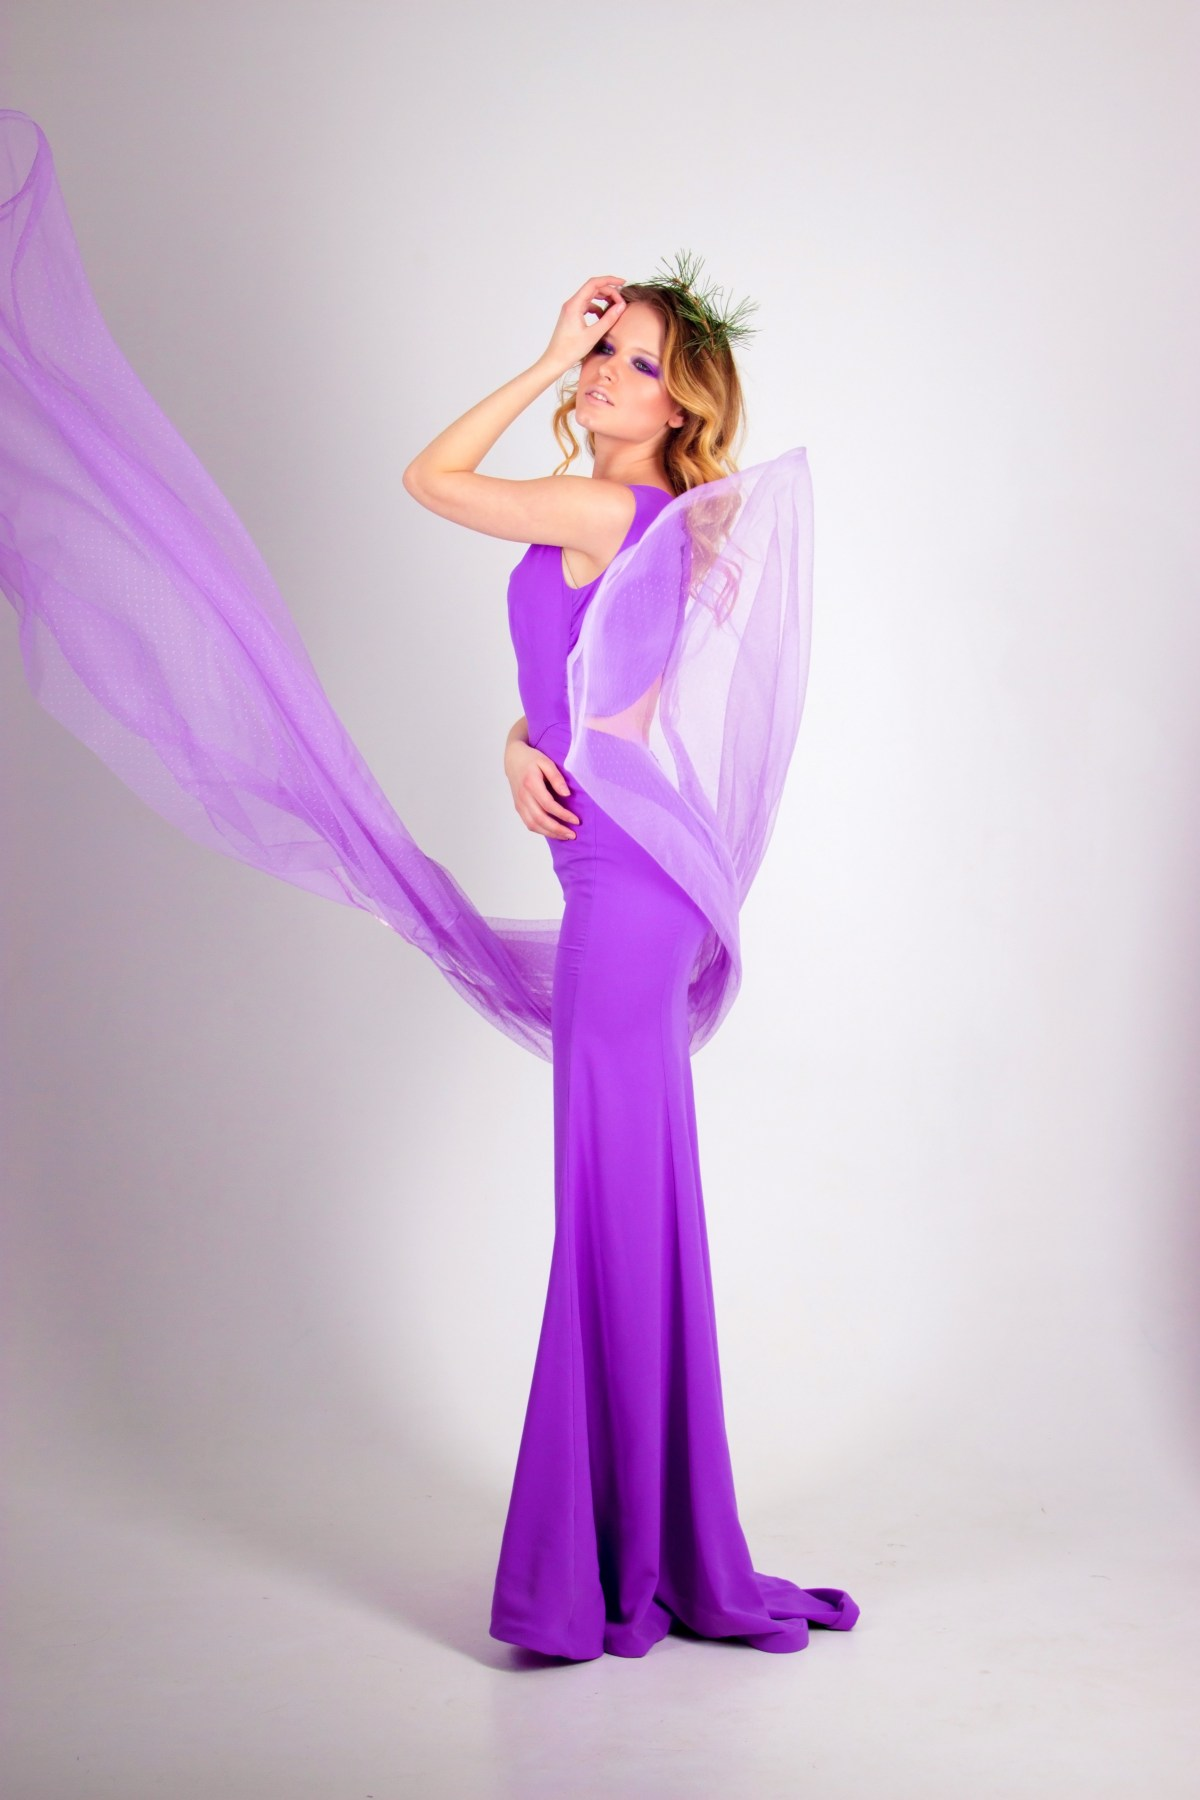 Choosing the perfect prom dress for your body shape